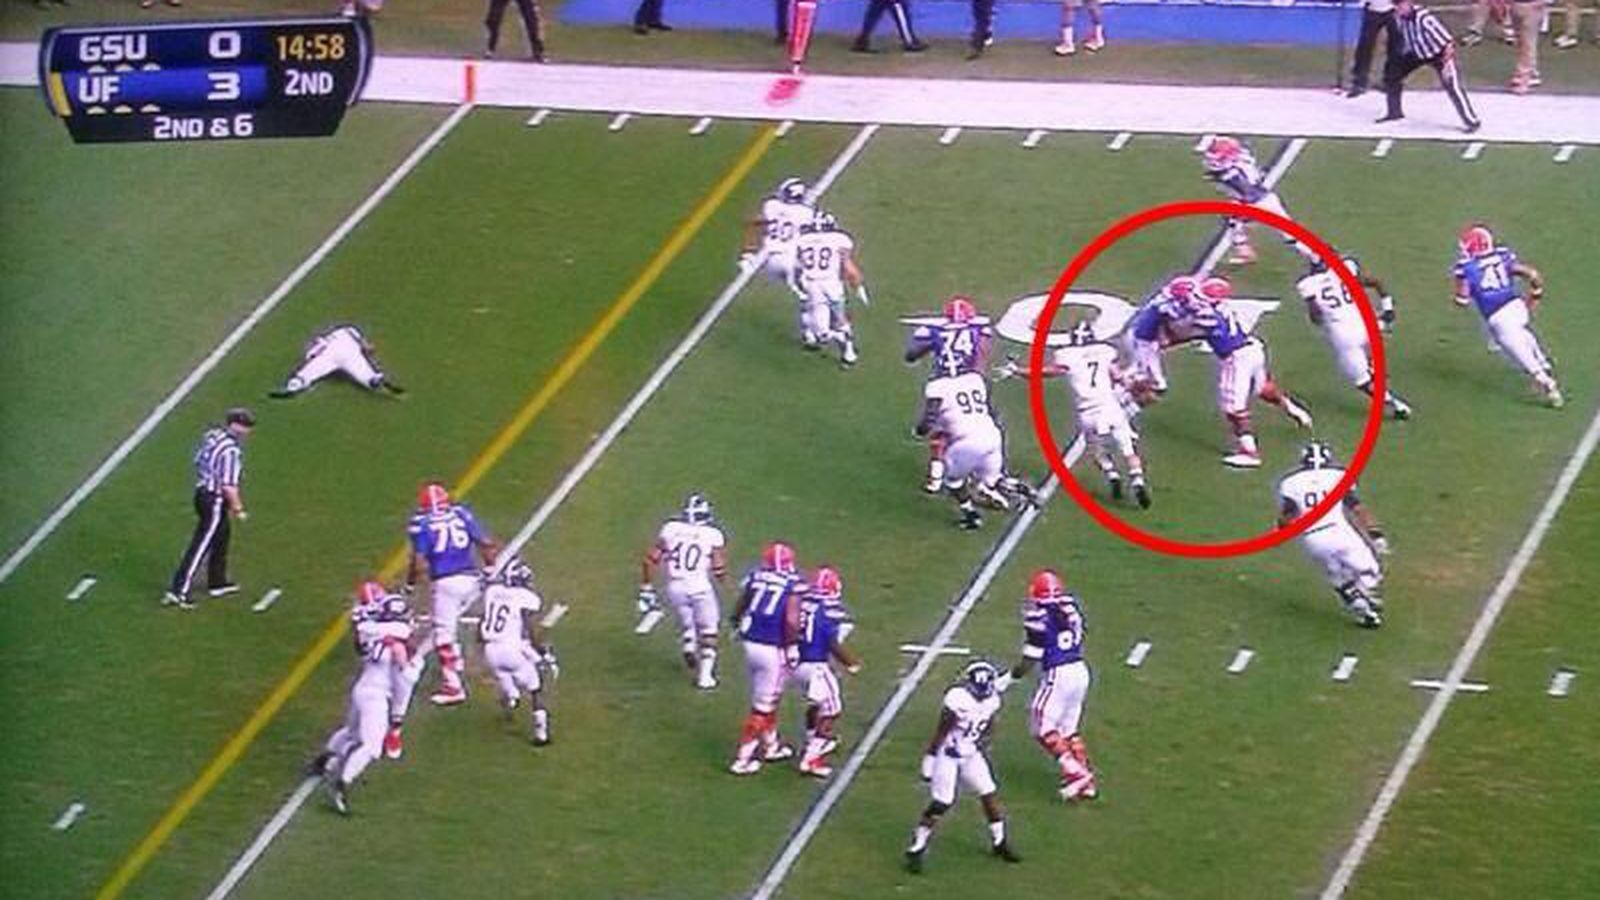 Florida players block each other vs. Georgia Southern ...